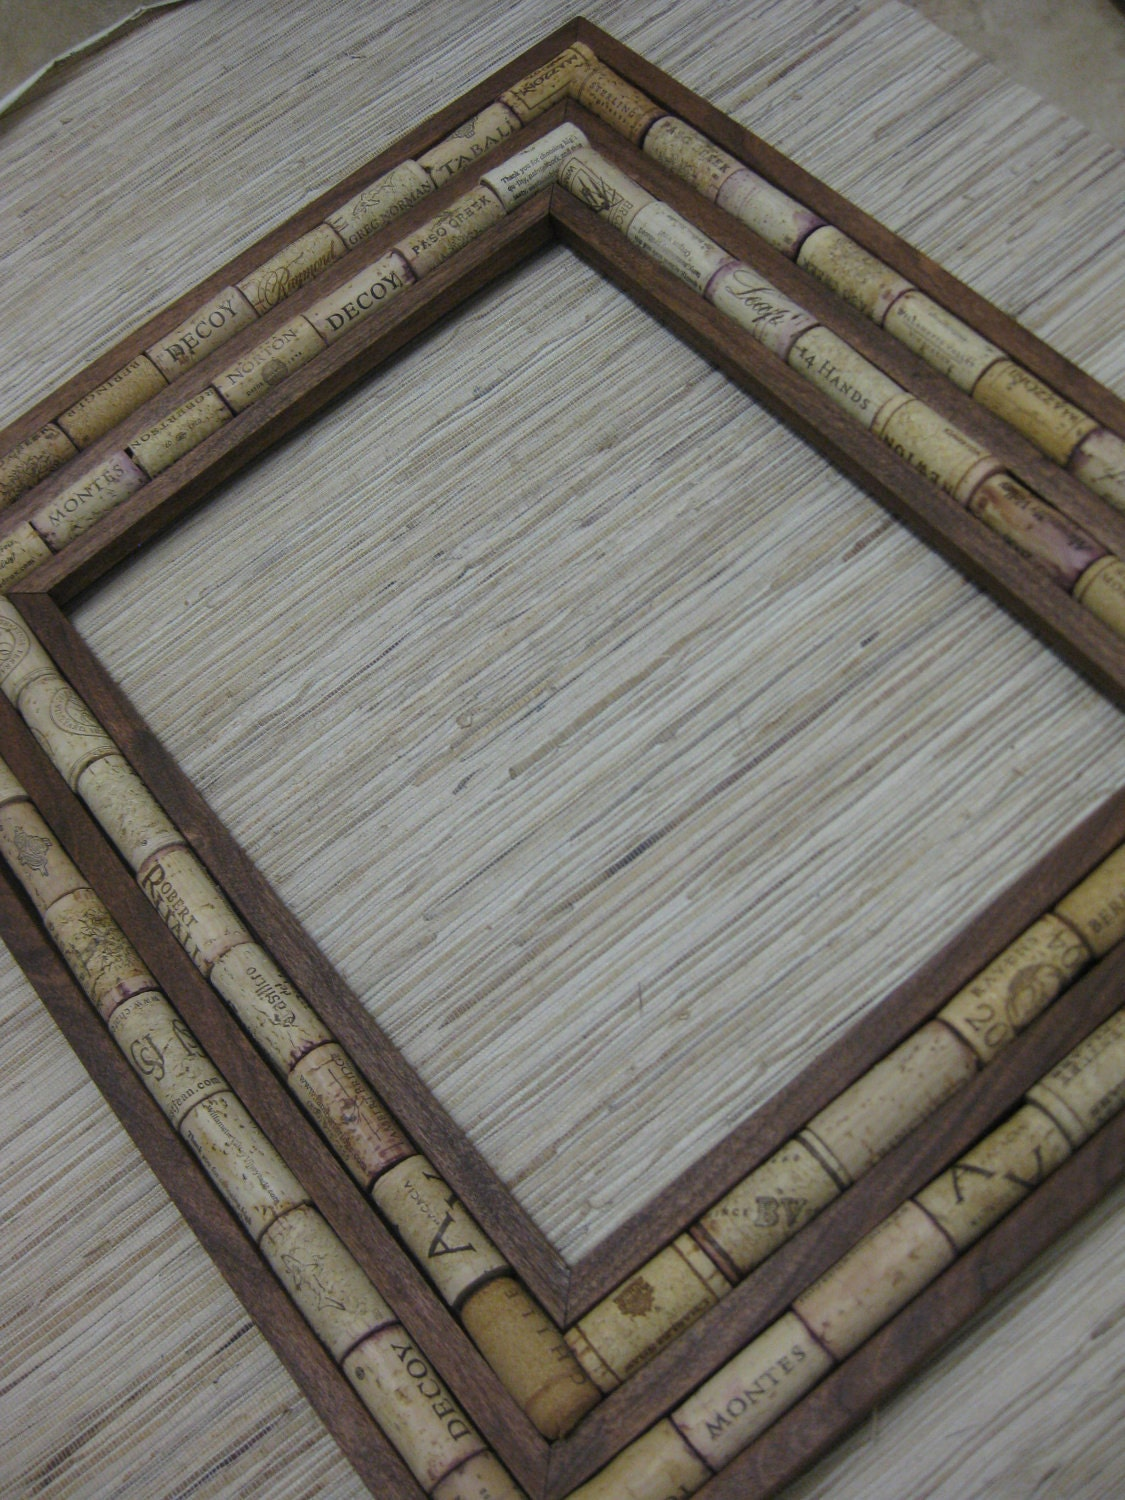 Sustainable Diy Wine Cork Frame Kit Made From Reclaimed Wood